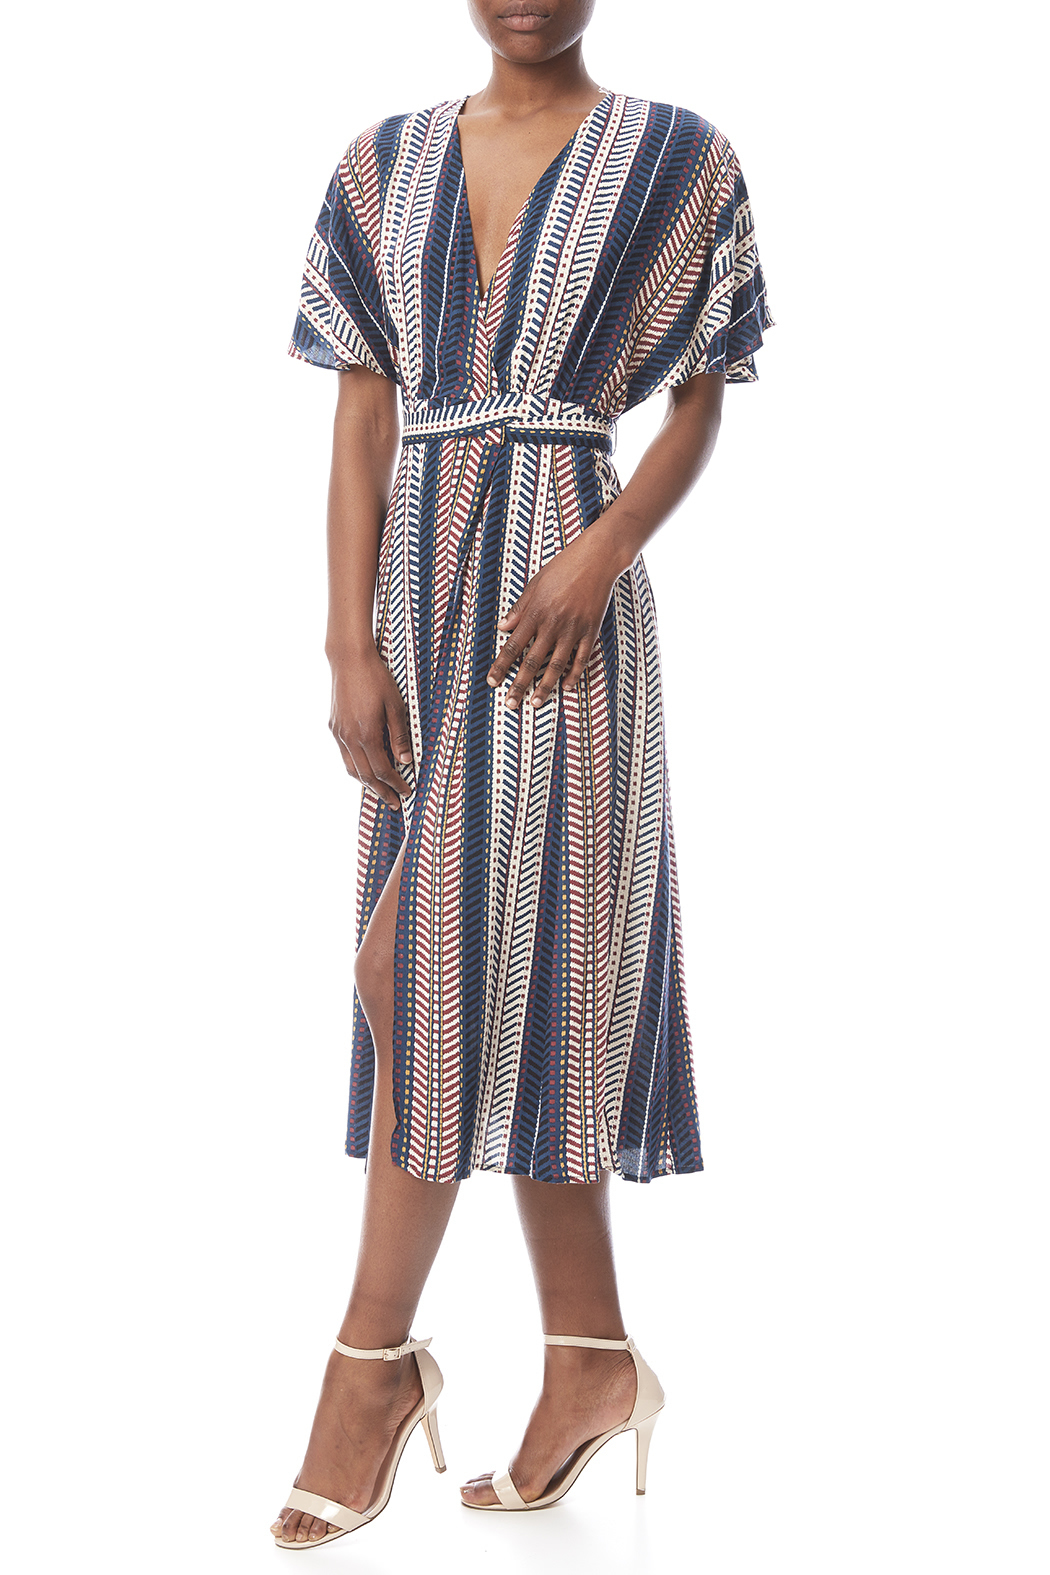 3d38a3f82a2d KORI AMERICA Striped Midi Wrap Dress from Phoenix by Clothes Minded ...